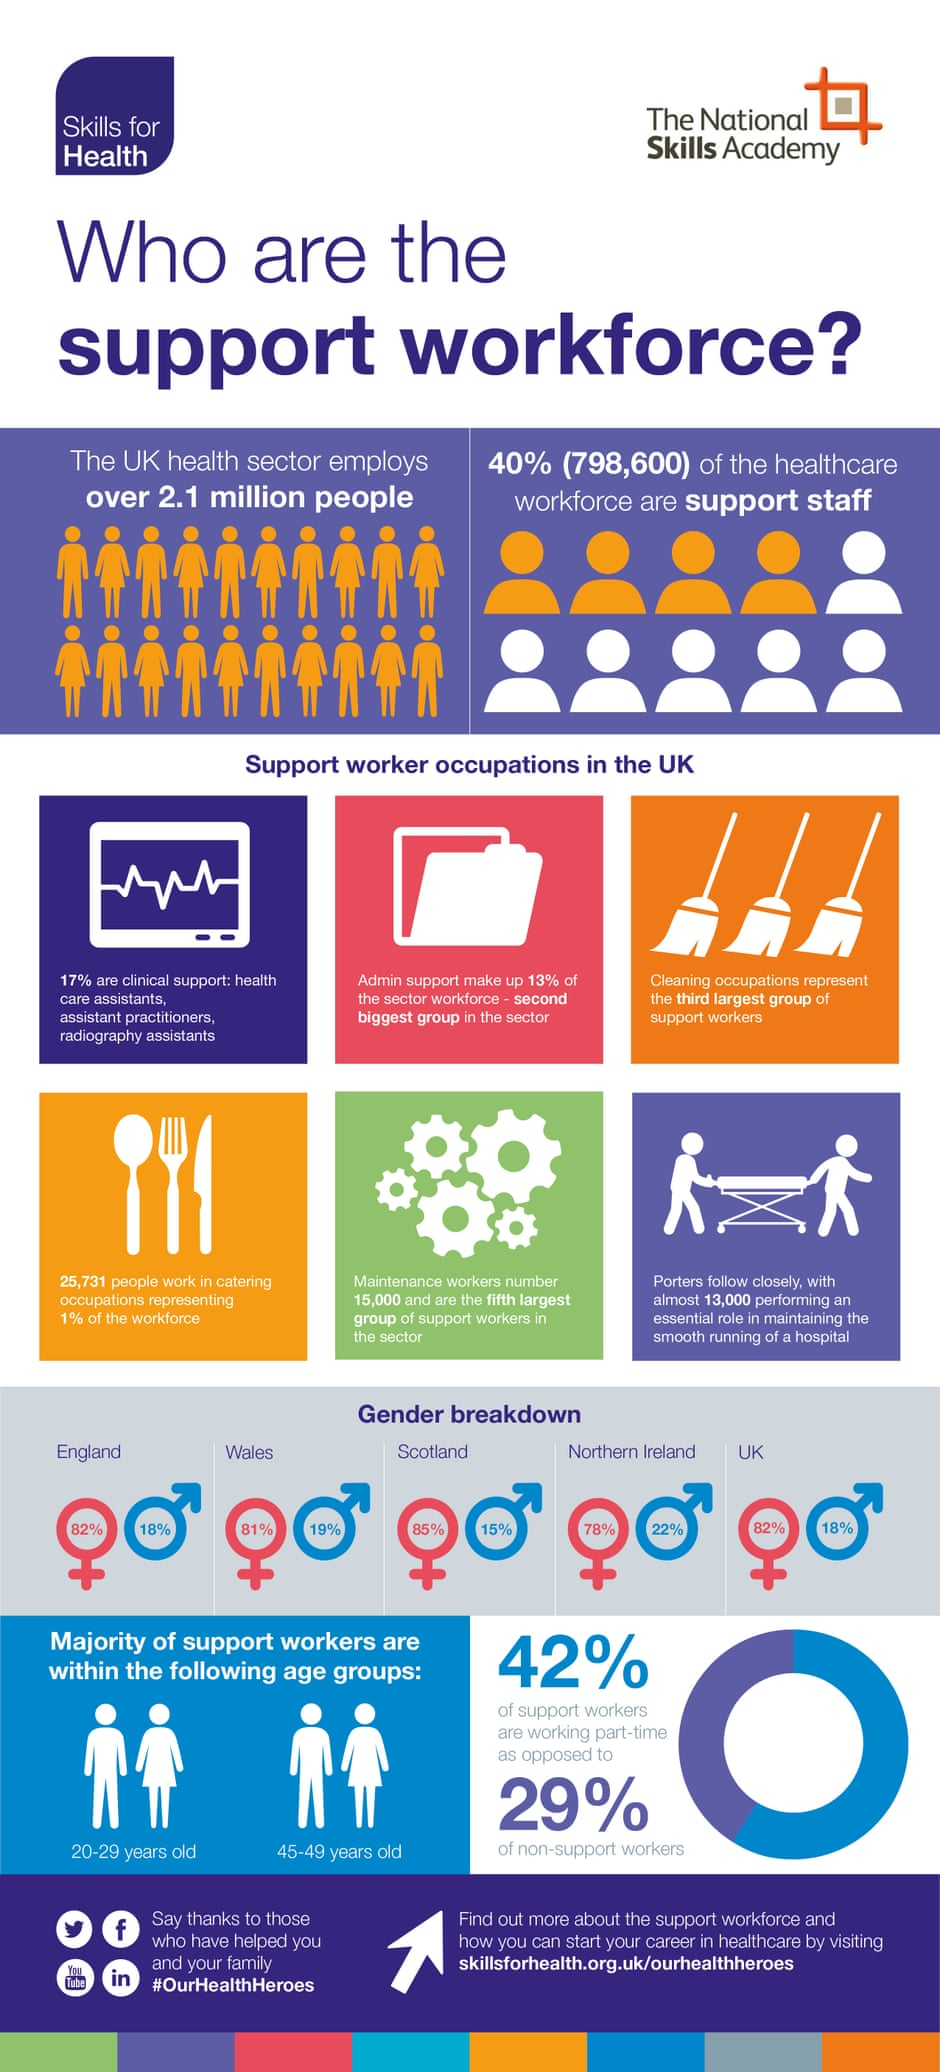 Skills for Health infographic